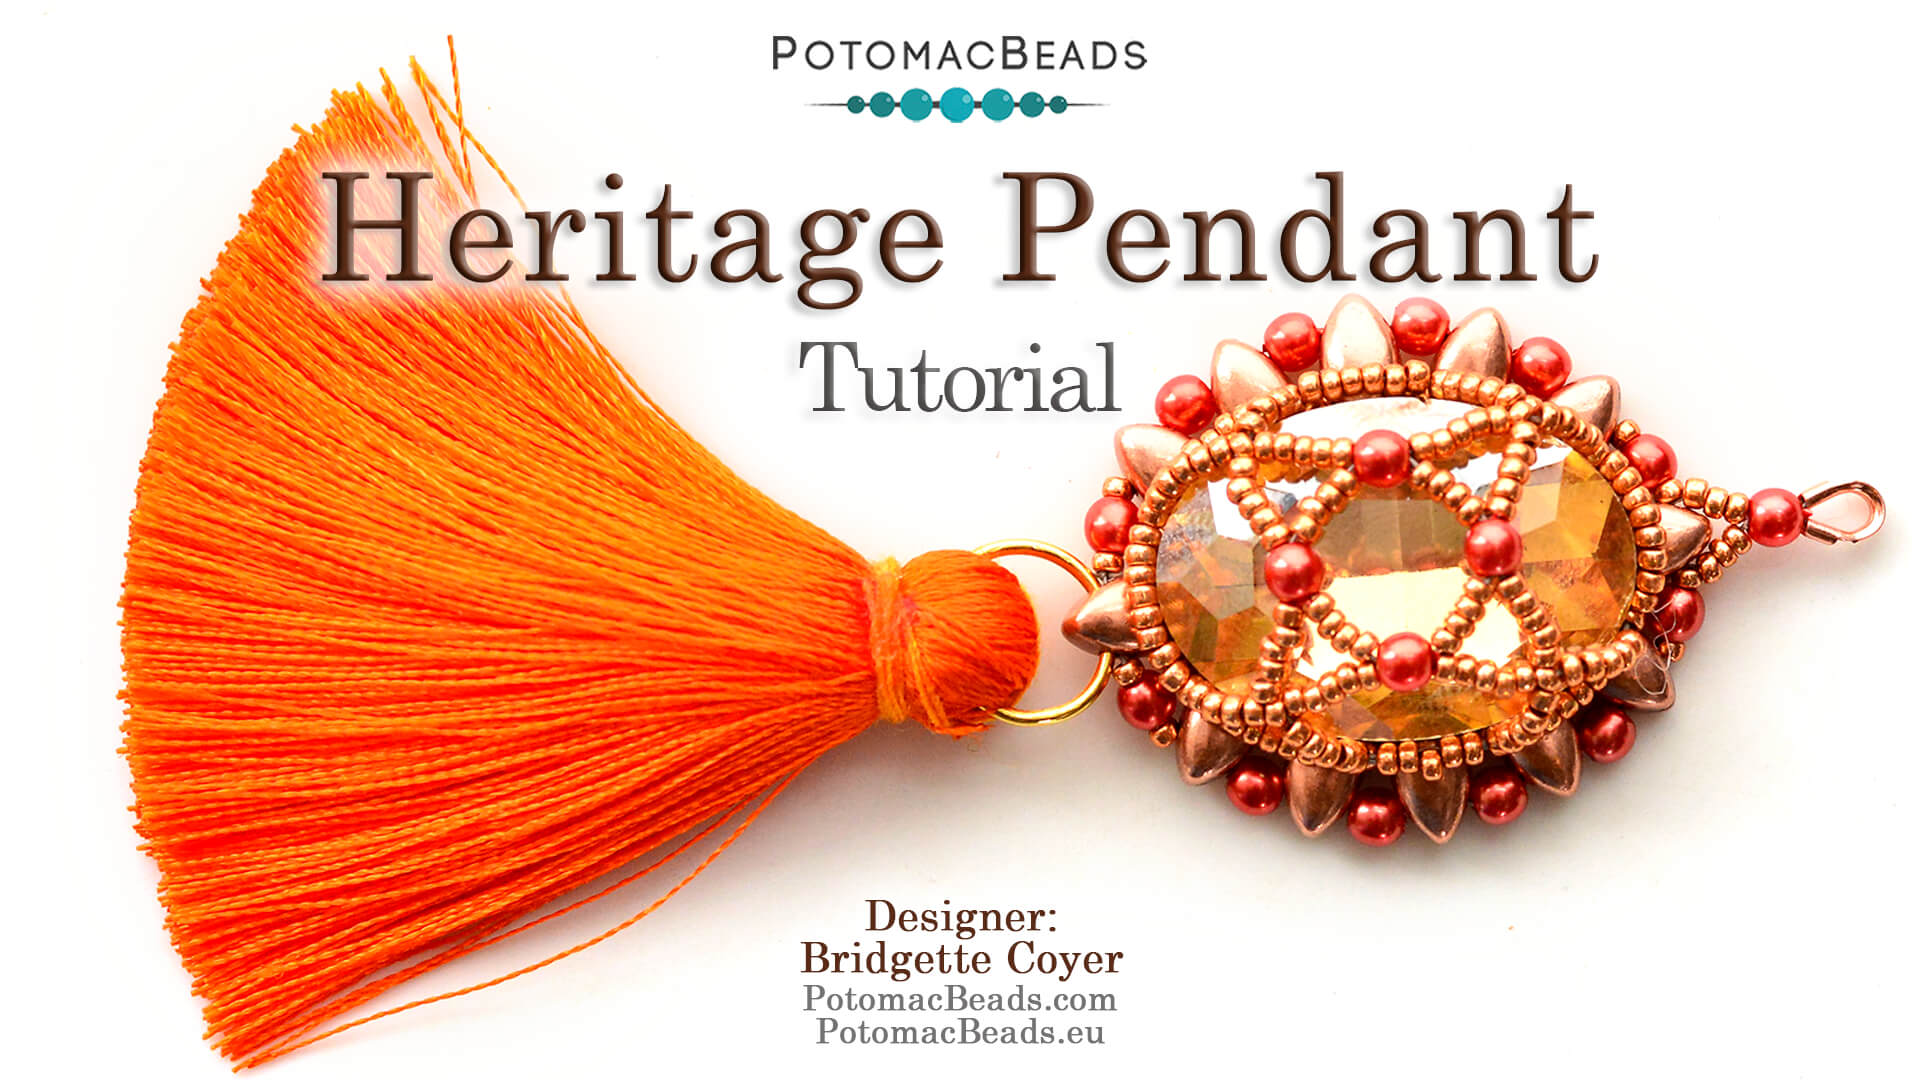 How to Bead Jewelry / Videos Sorted by Beads / Pearl Videos (Czech, Freshwater, Potomac Pearls) / Heritage Pendant Tutorial